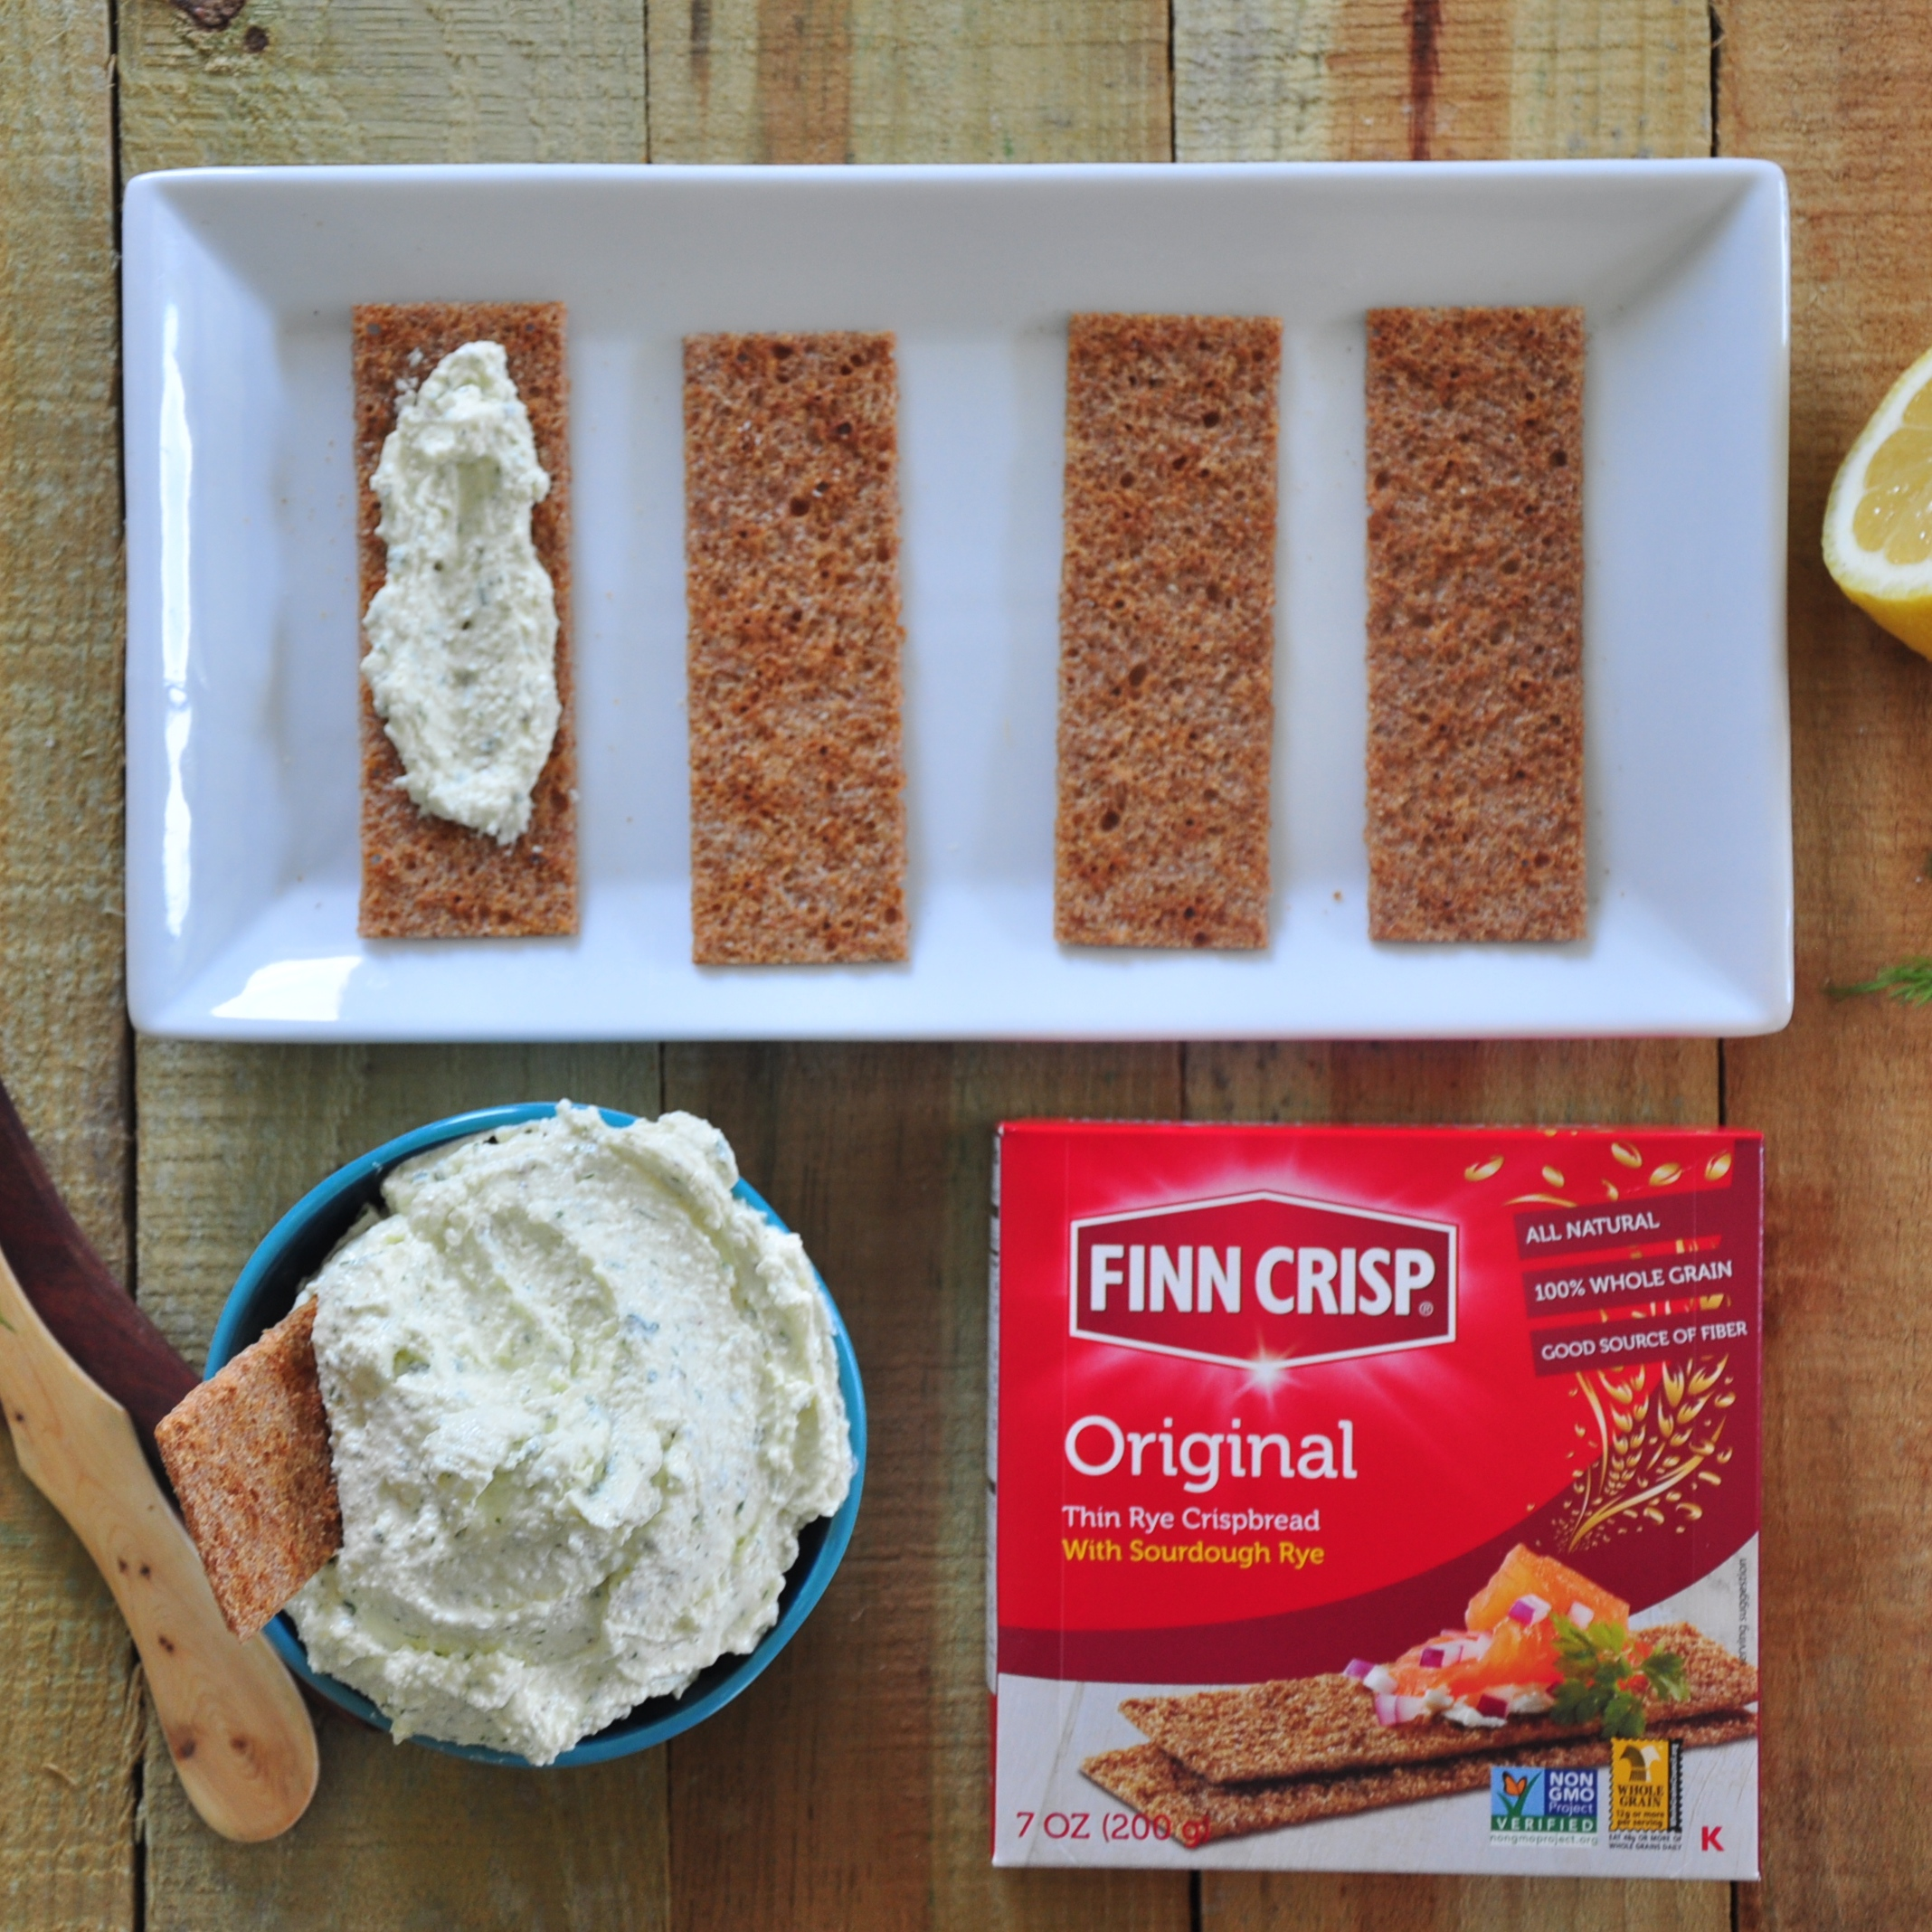 The Finn Crisp rye crackers are the perfect pairing with this delicious cheese spread.